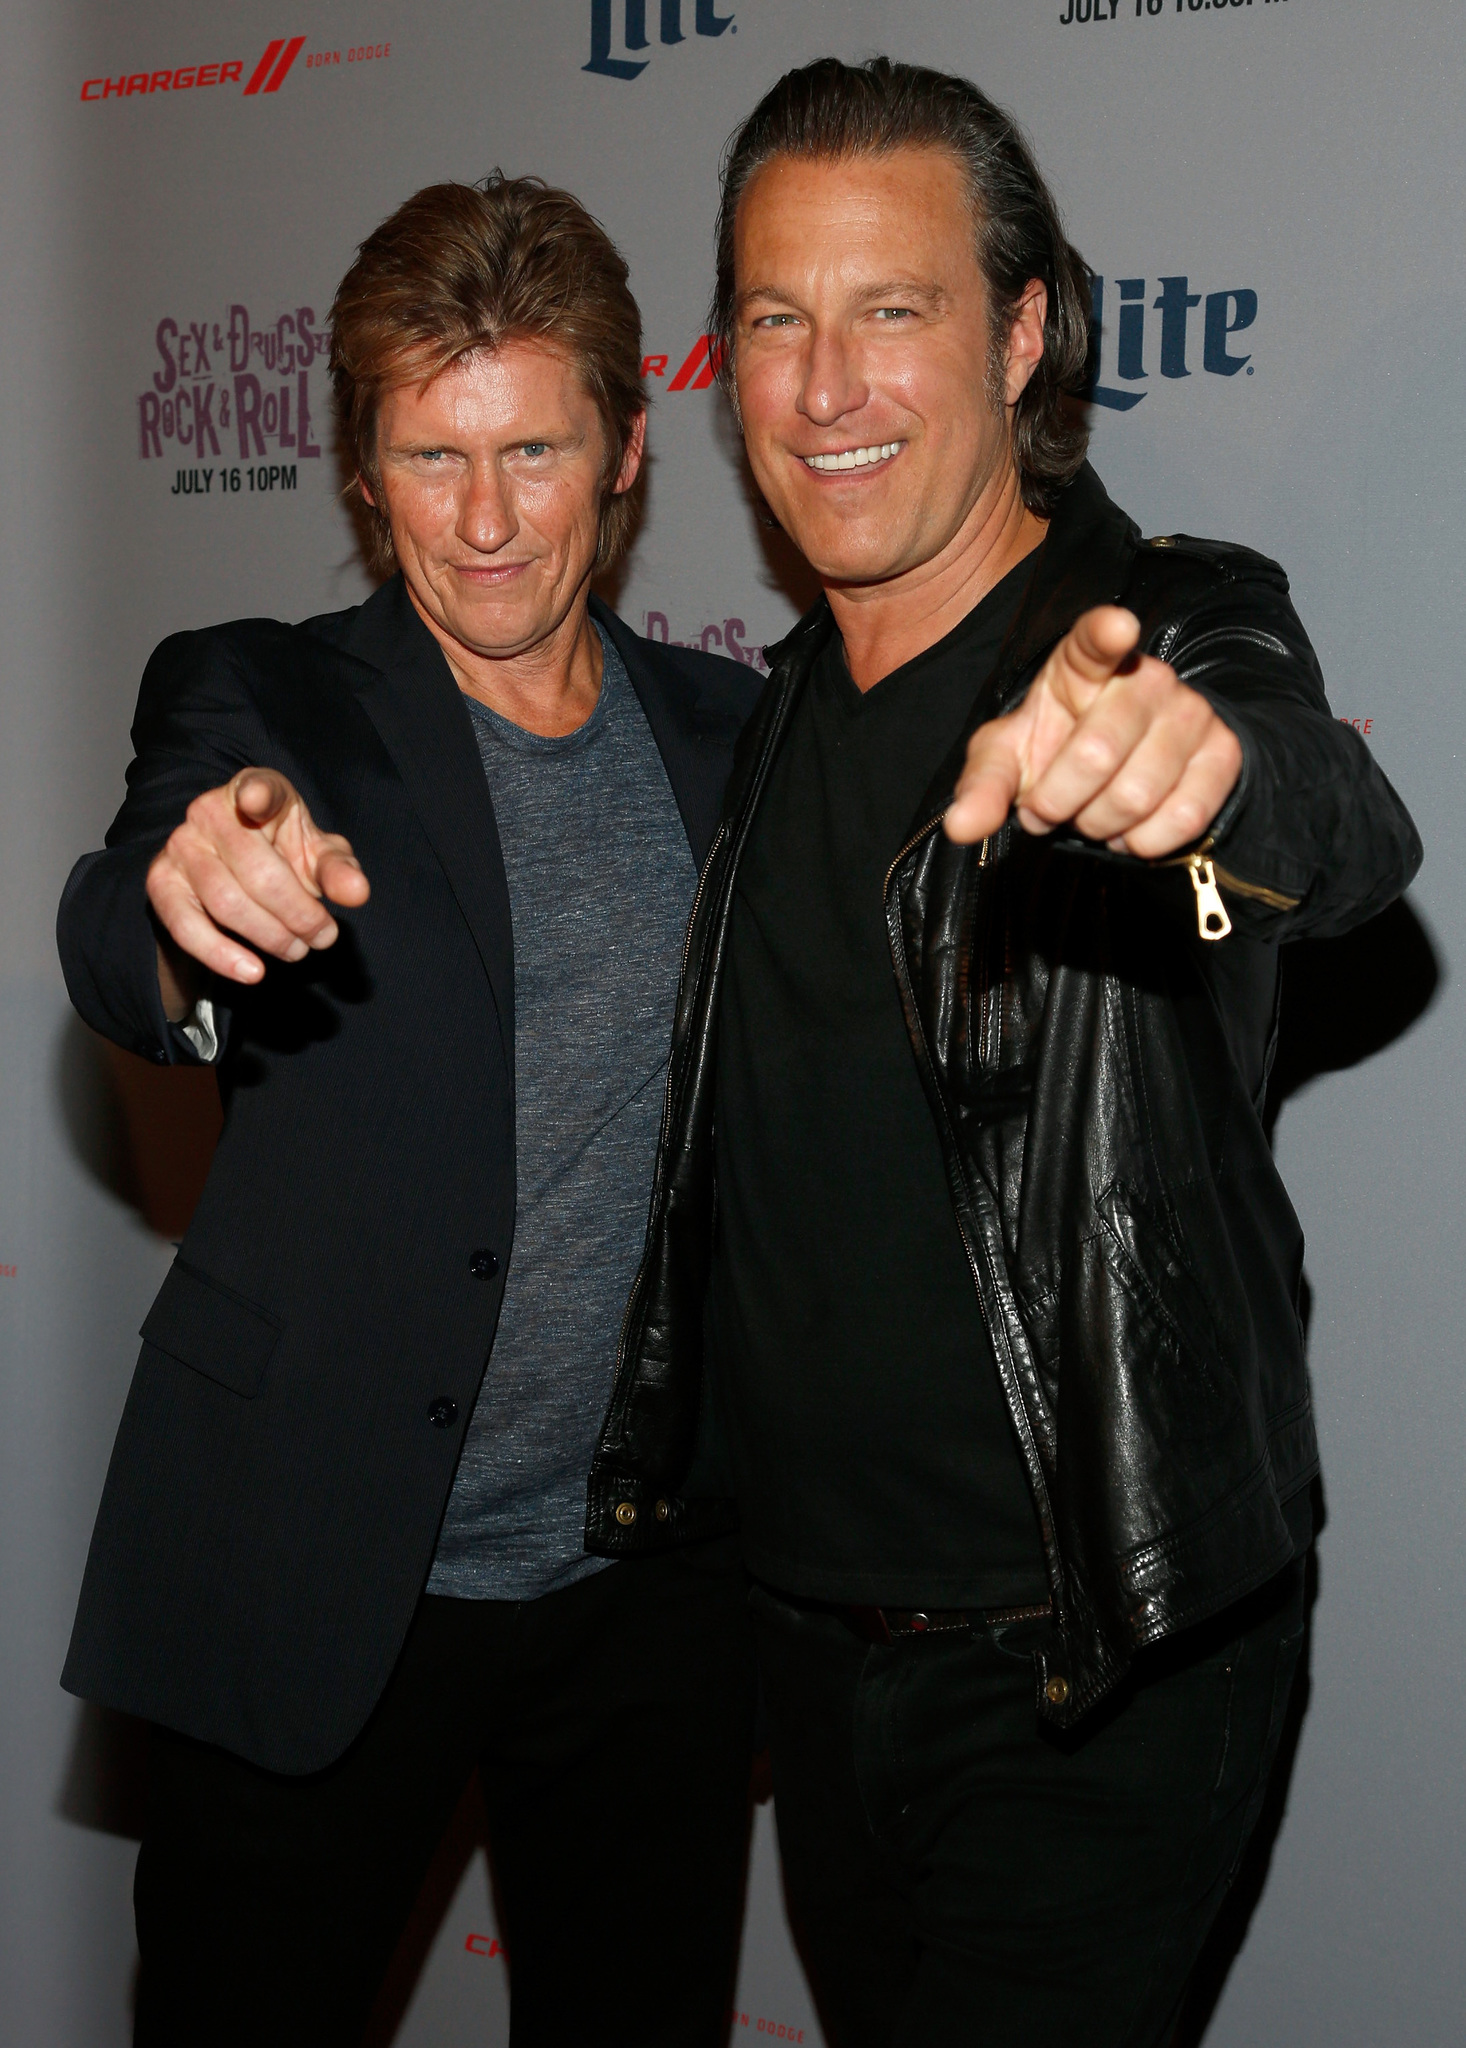 Denis Leary and John Corbett at an event for Sex & Drugs & Rock & Roll (2015)